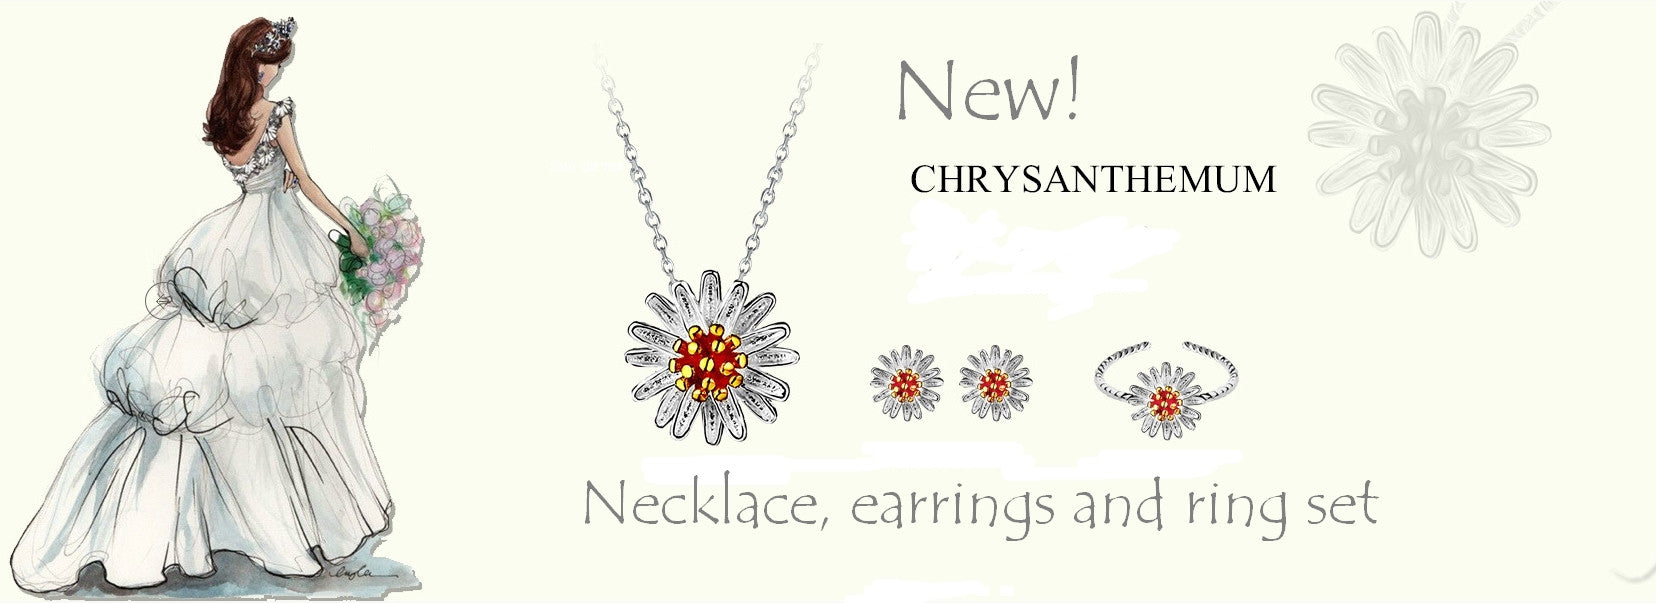 Crysanthemum daisy jewellery set